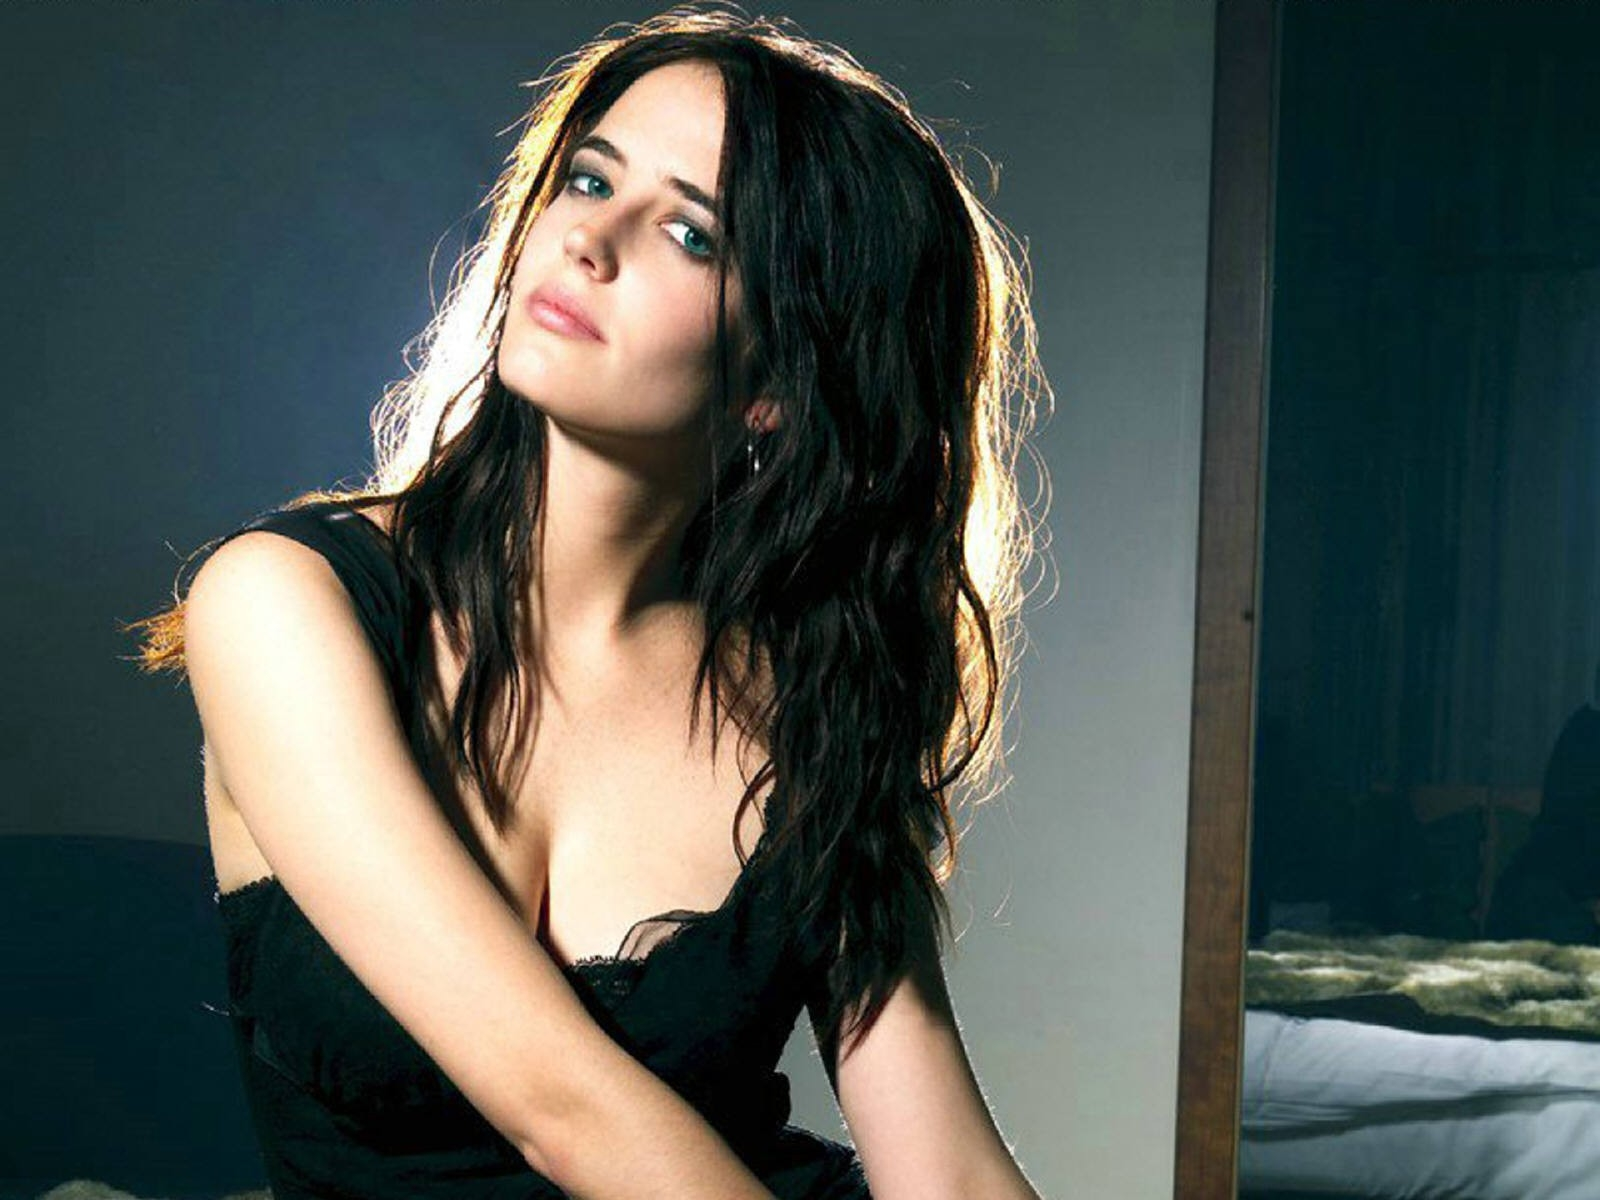 Wallpaper di Eva Green su fondo scuro